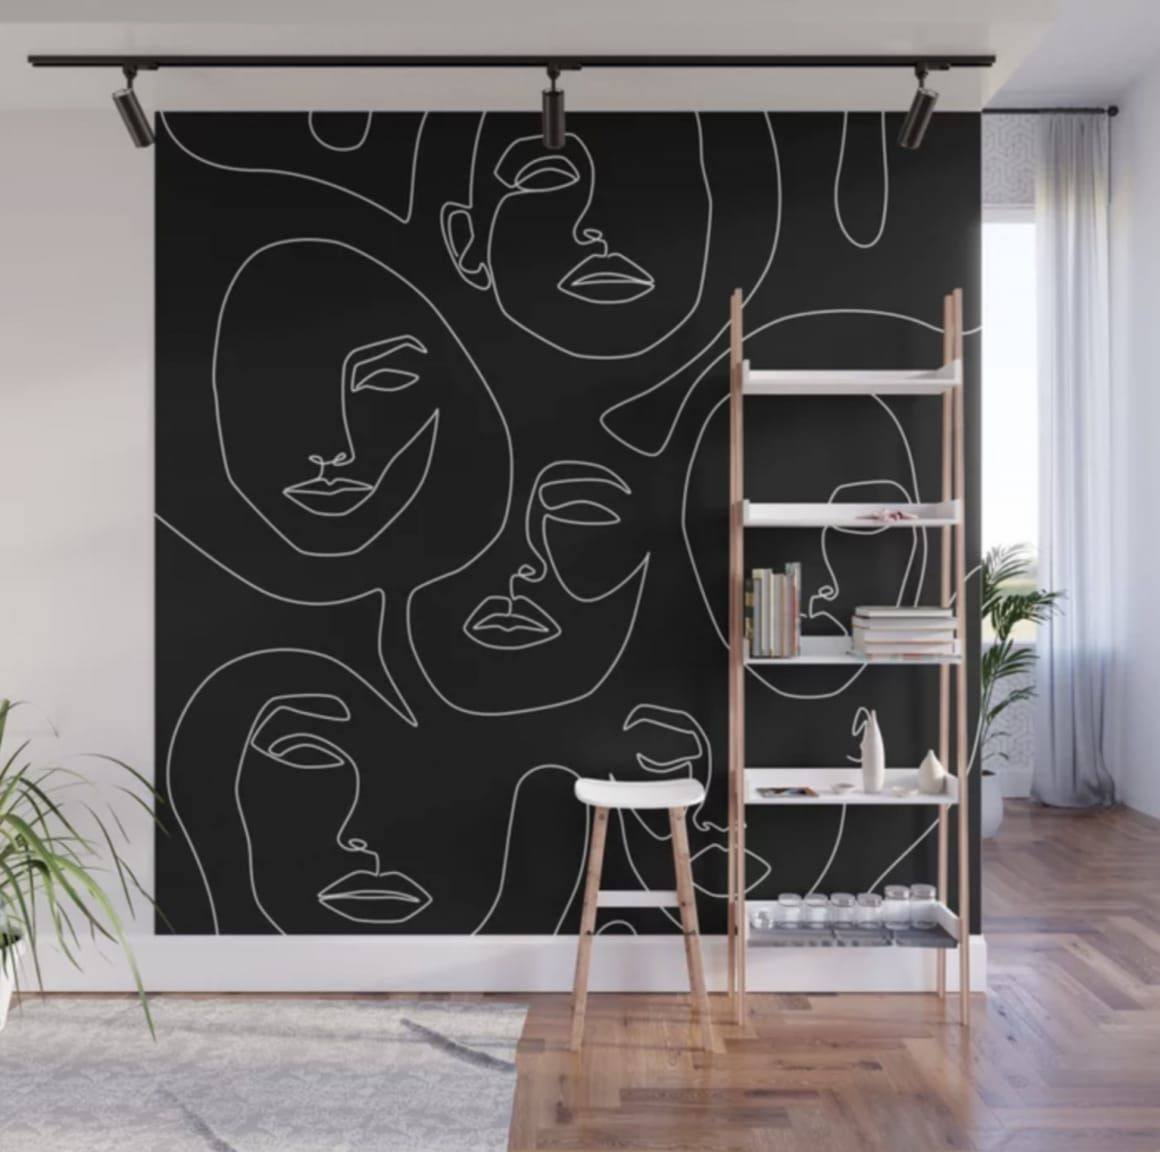 Easy-to-Install Wall Murals to Hang In Your Home | Apartment Therapy